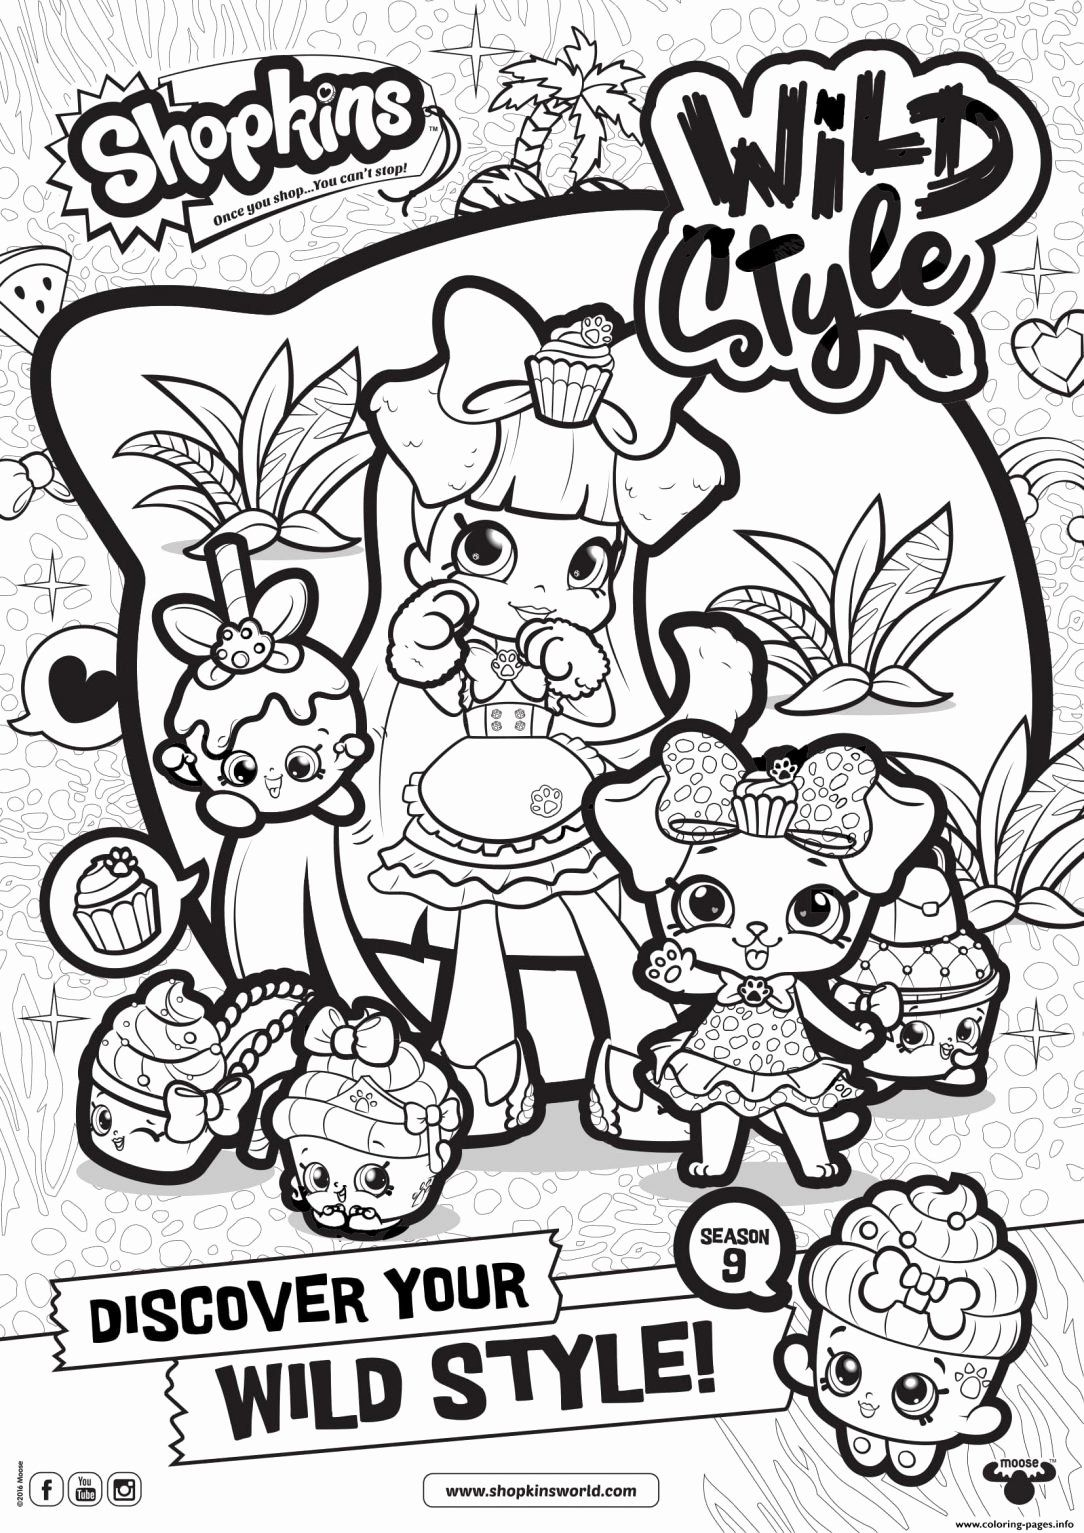 Shopkins Printable Coloring Sheets Awesome Coloring Pages Shopkins Page Coloring Book Choco In 2020 Cute Coloring Pages Shopkin Coloring Pages Shopkins Colouring Pages